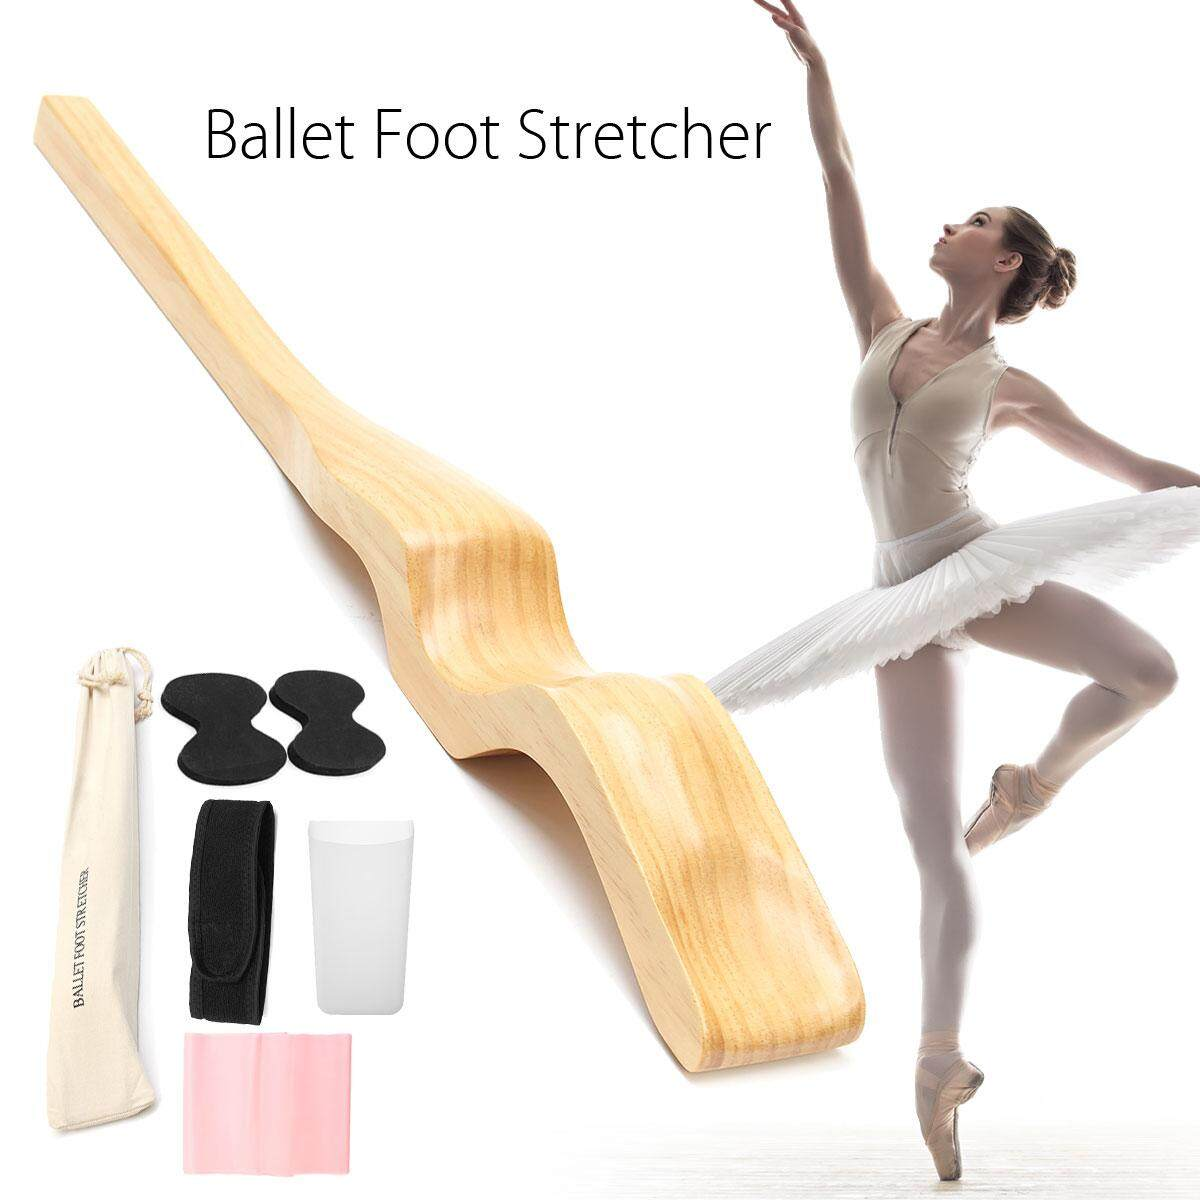 Wood Ballet Foot Stretch Stretcher Arch Enhancer Dance Gymnastics Elastic Band By Audew.